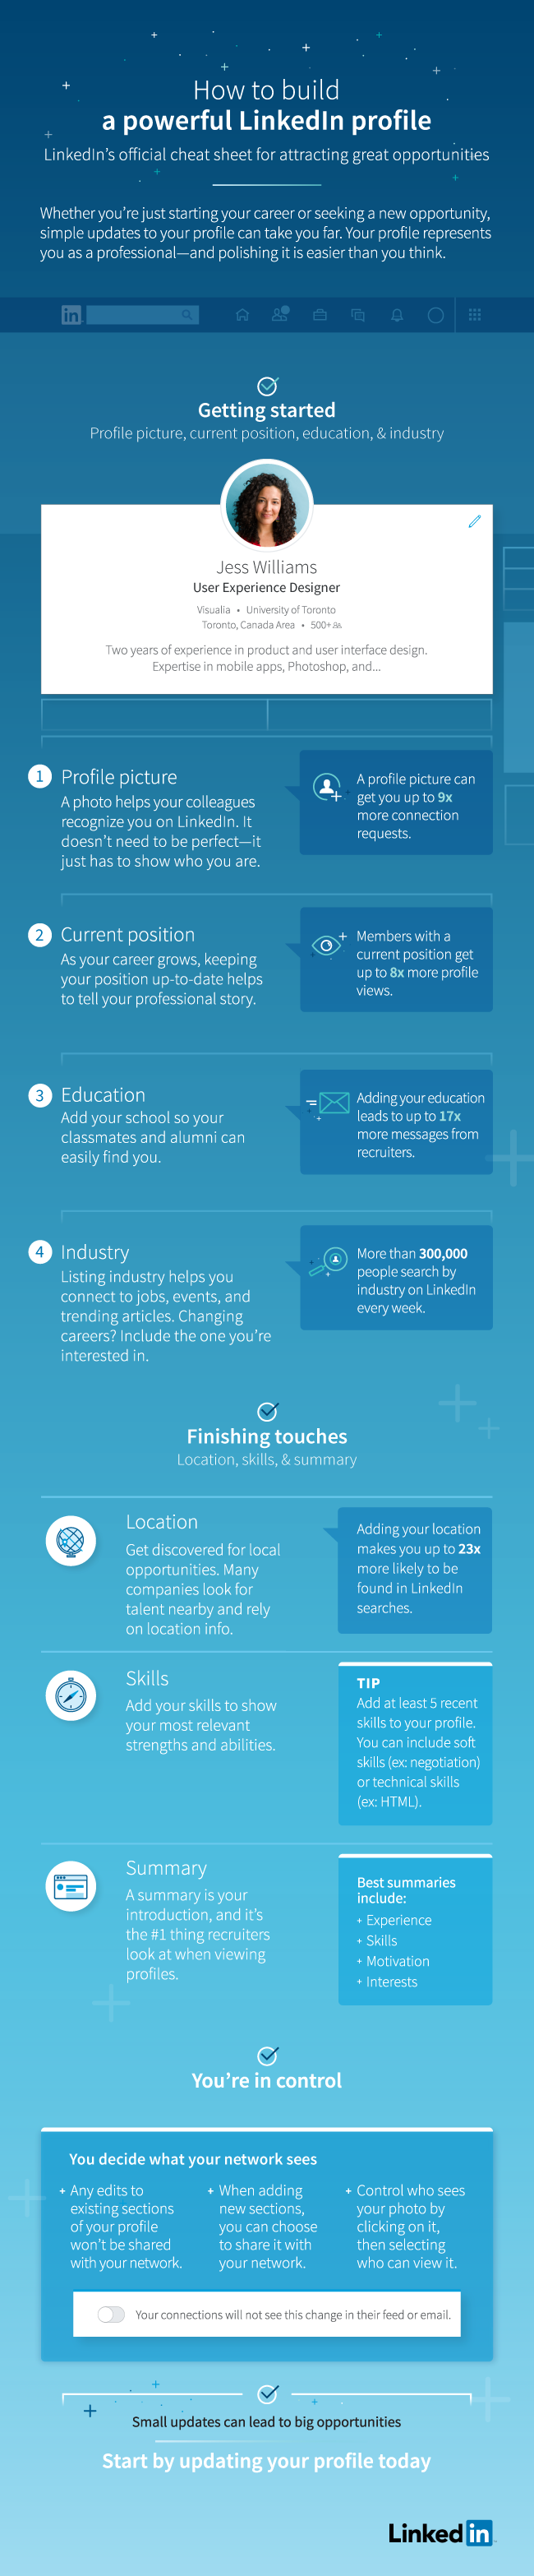 How to Build a Powerful LinkedIn Profile - #Infographic